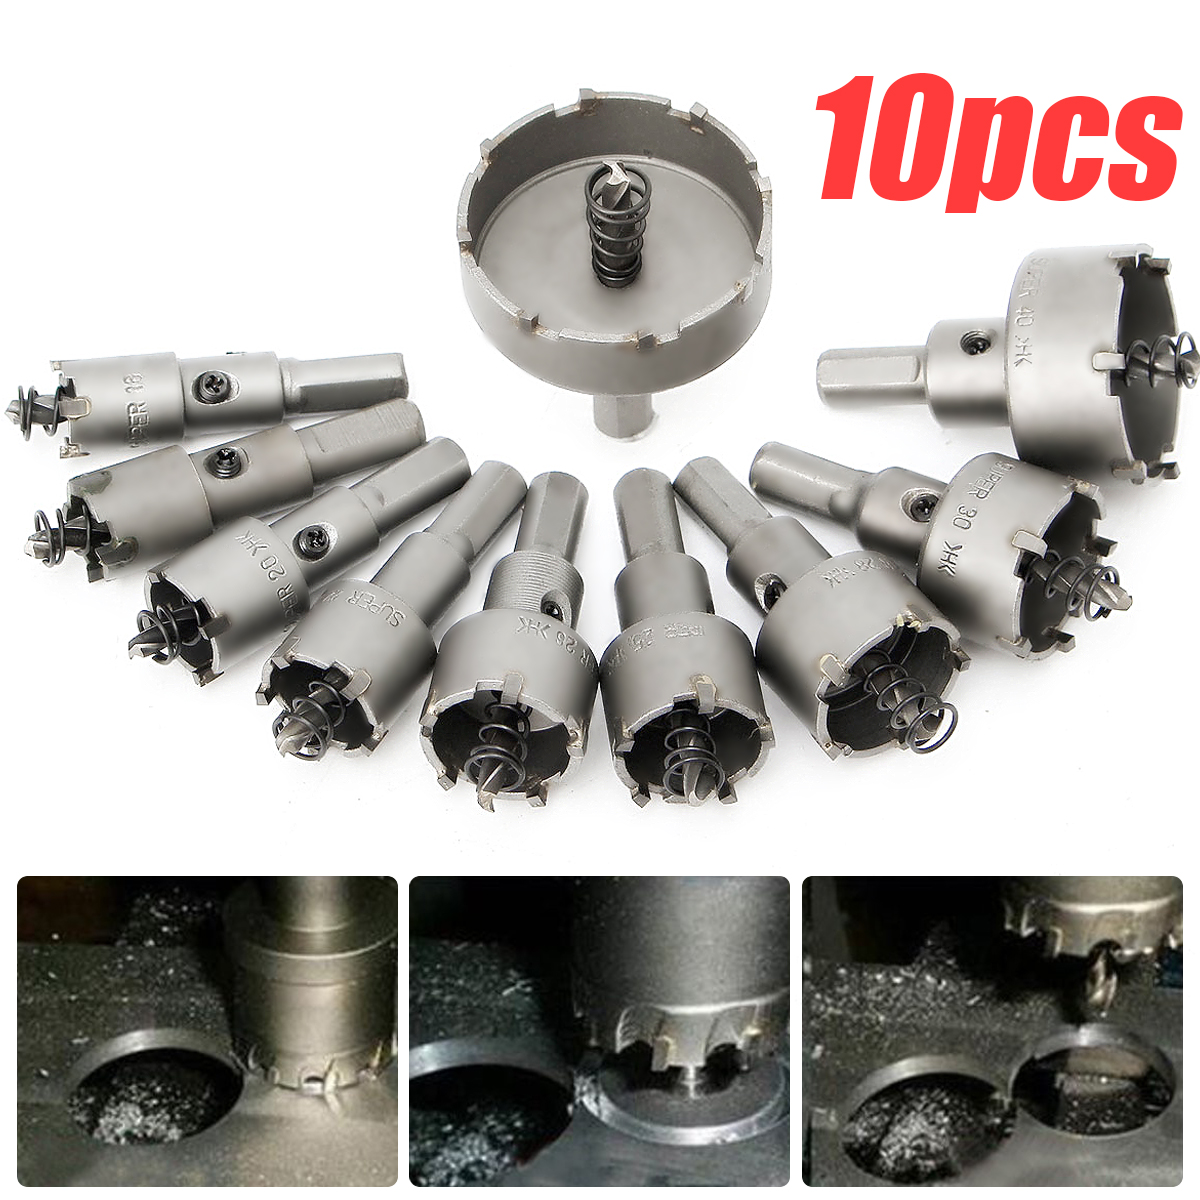 10pcs 16 - 50mm Carbide Tip TCT Drill Bit Hole Saw Stainless Steel Alloy Tools 16/18/20/22/25/26/28/30/40/50mm Different Sizes 1pc 16 18 20 22 25 28 30 35 40 45 50mm woodworking boring wood hole opener saw cutter drill bit wood working drill bits